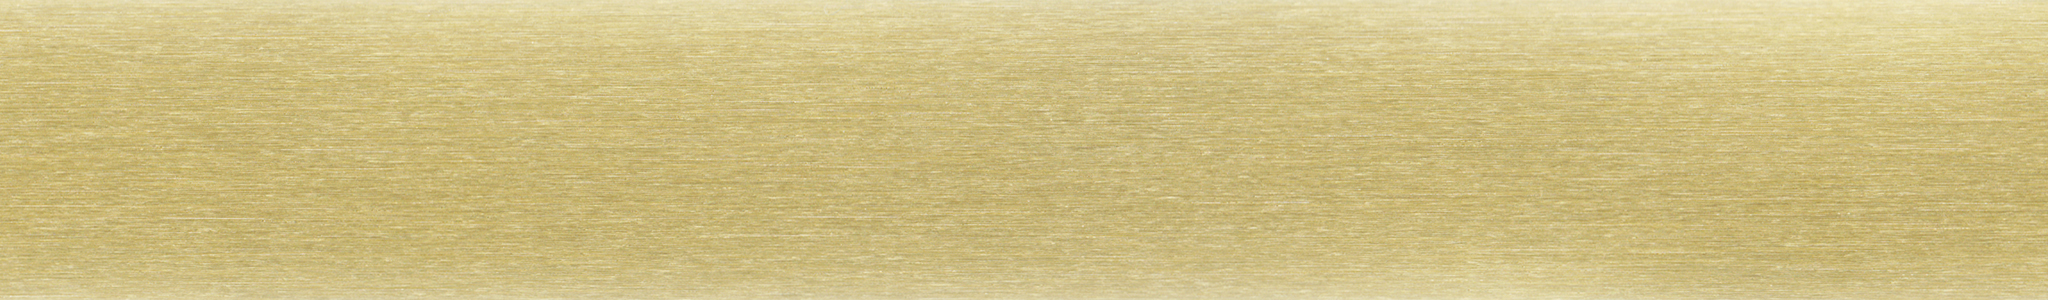 HD 29930 ABS Edge with ALU Foil Gold Brushed